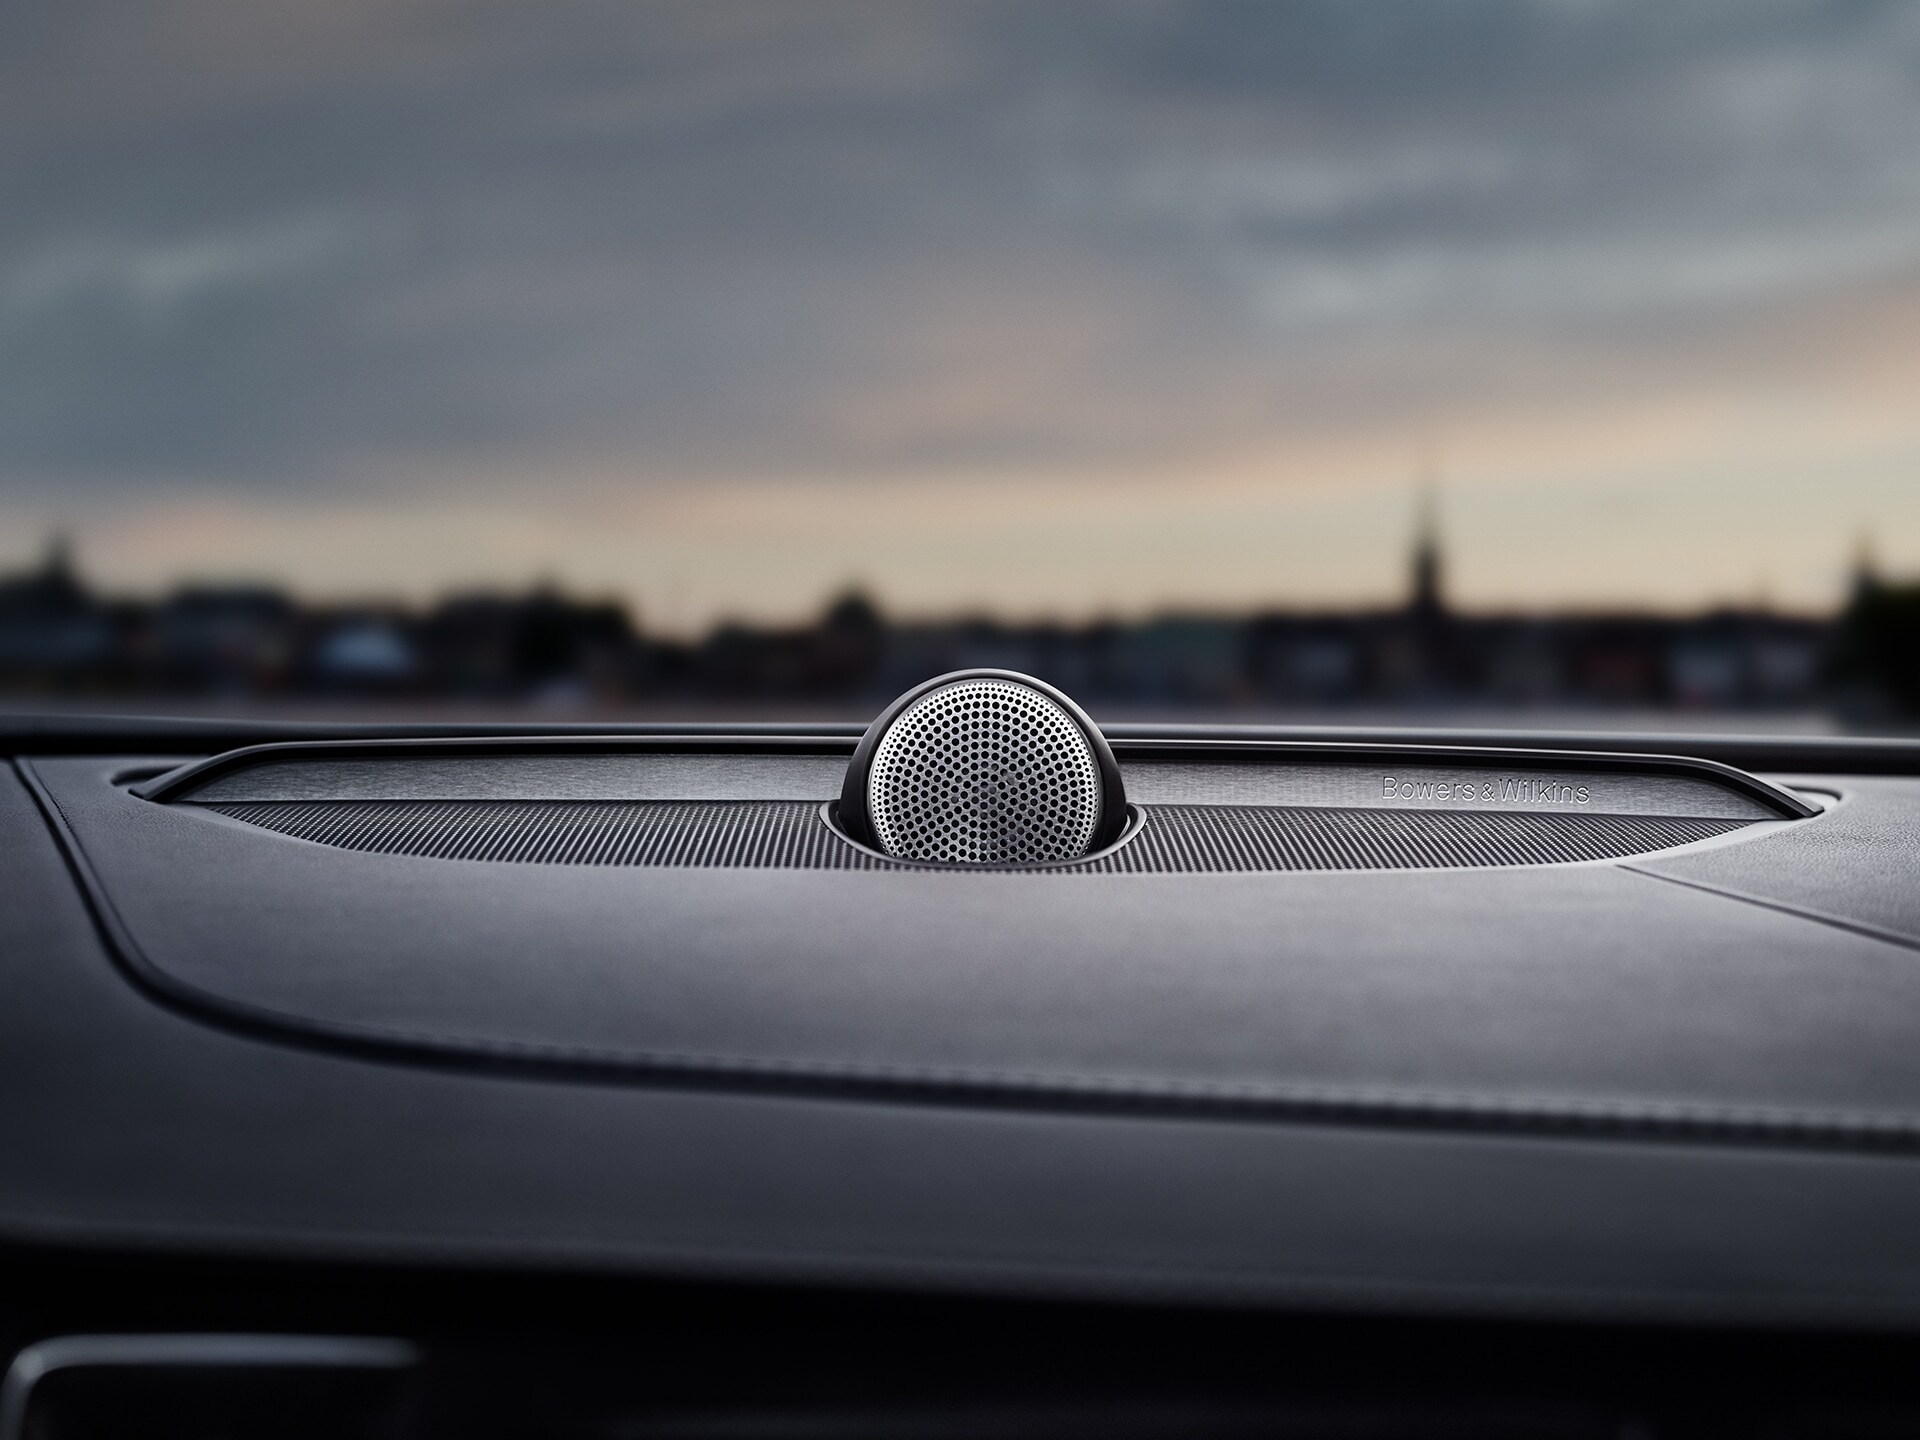 Altoparlante Bowers & Wilkins all'interno di una Volvo XC90 Recharge